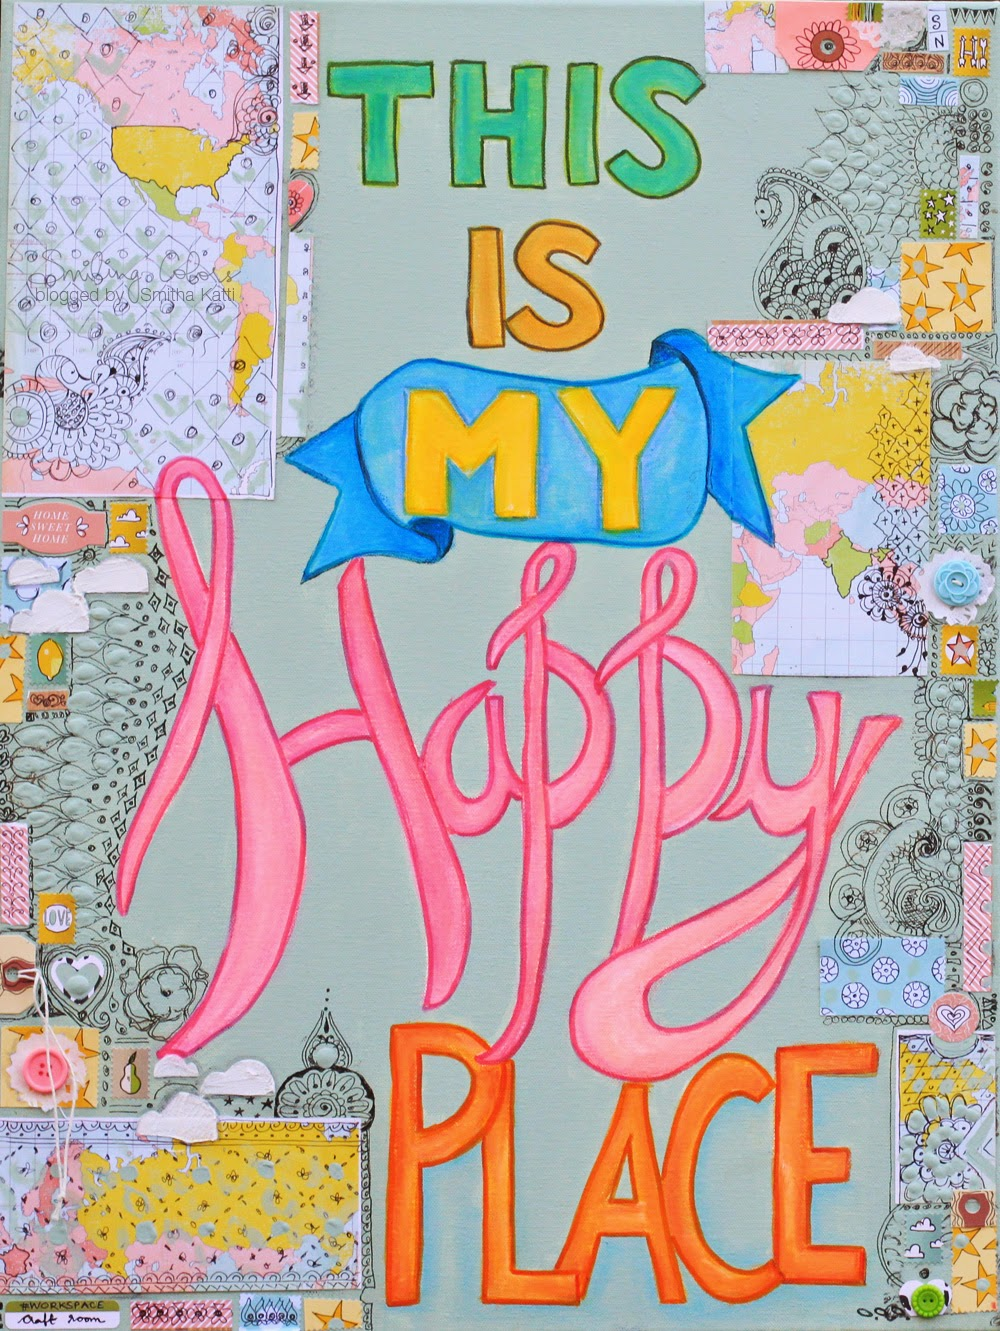 http://www.smilingcolors.com/2015/04/happy-place-canvas-mixed-media-tutorial/